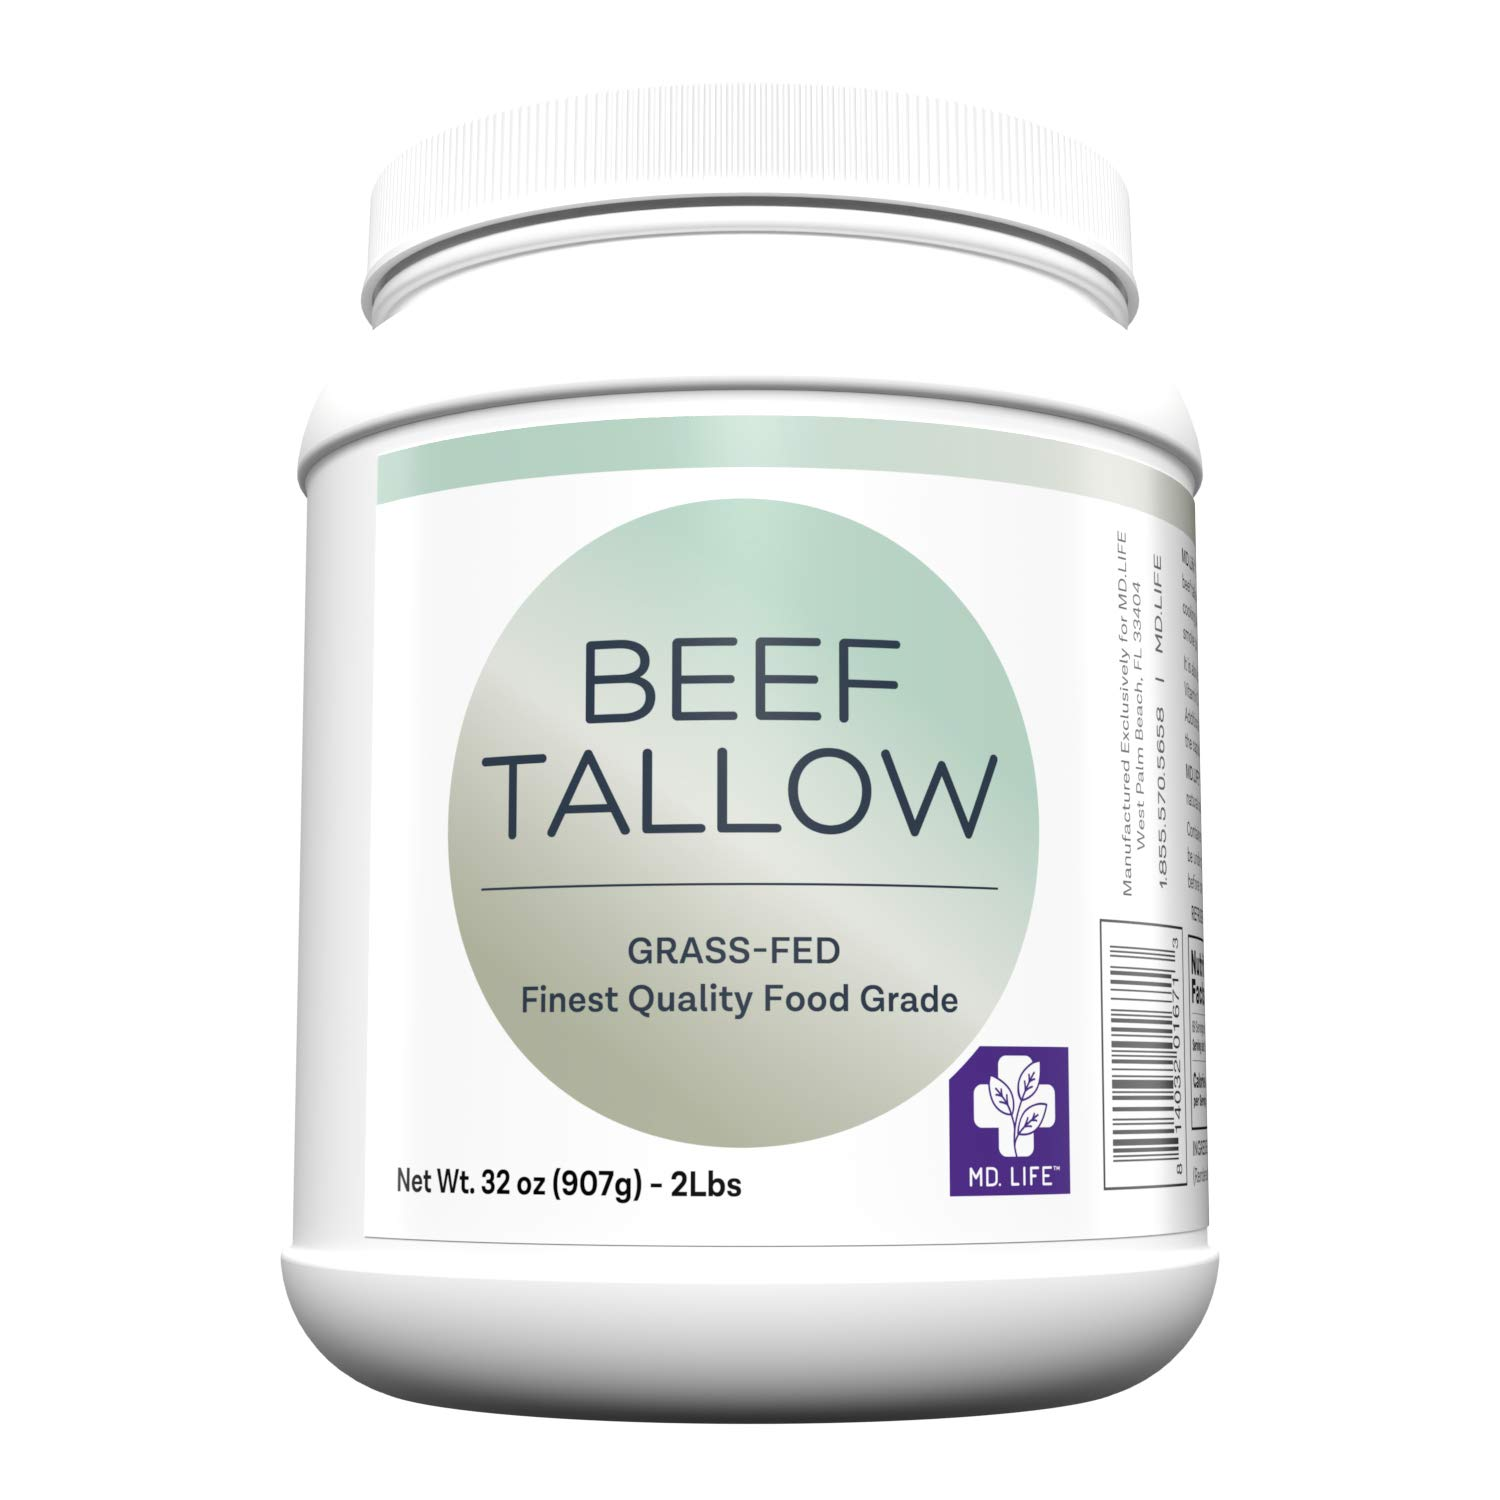 MD. Life Beef Tallow for Cooking - Food Grade Grass Fed Beef Tallow for Cooking Oil Replacement - 1 Gallon (4 Pack) - Pasture Raised Keto Friendly Beef Tallow- Can be Used to Make Candles & Soaps